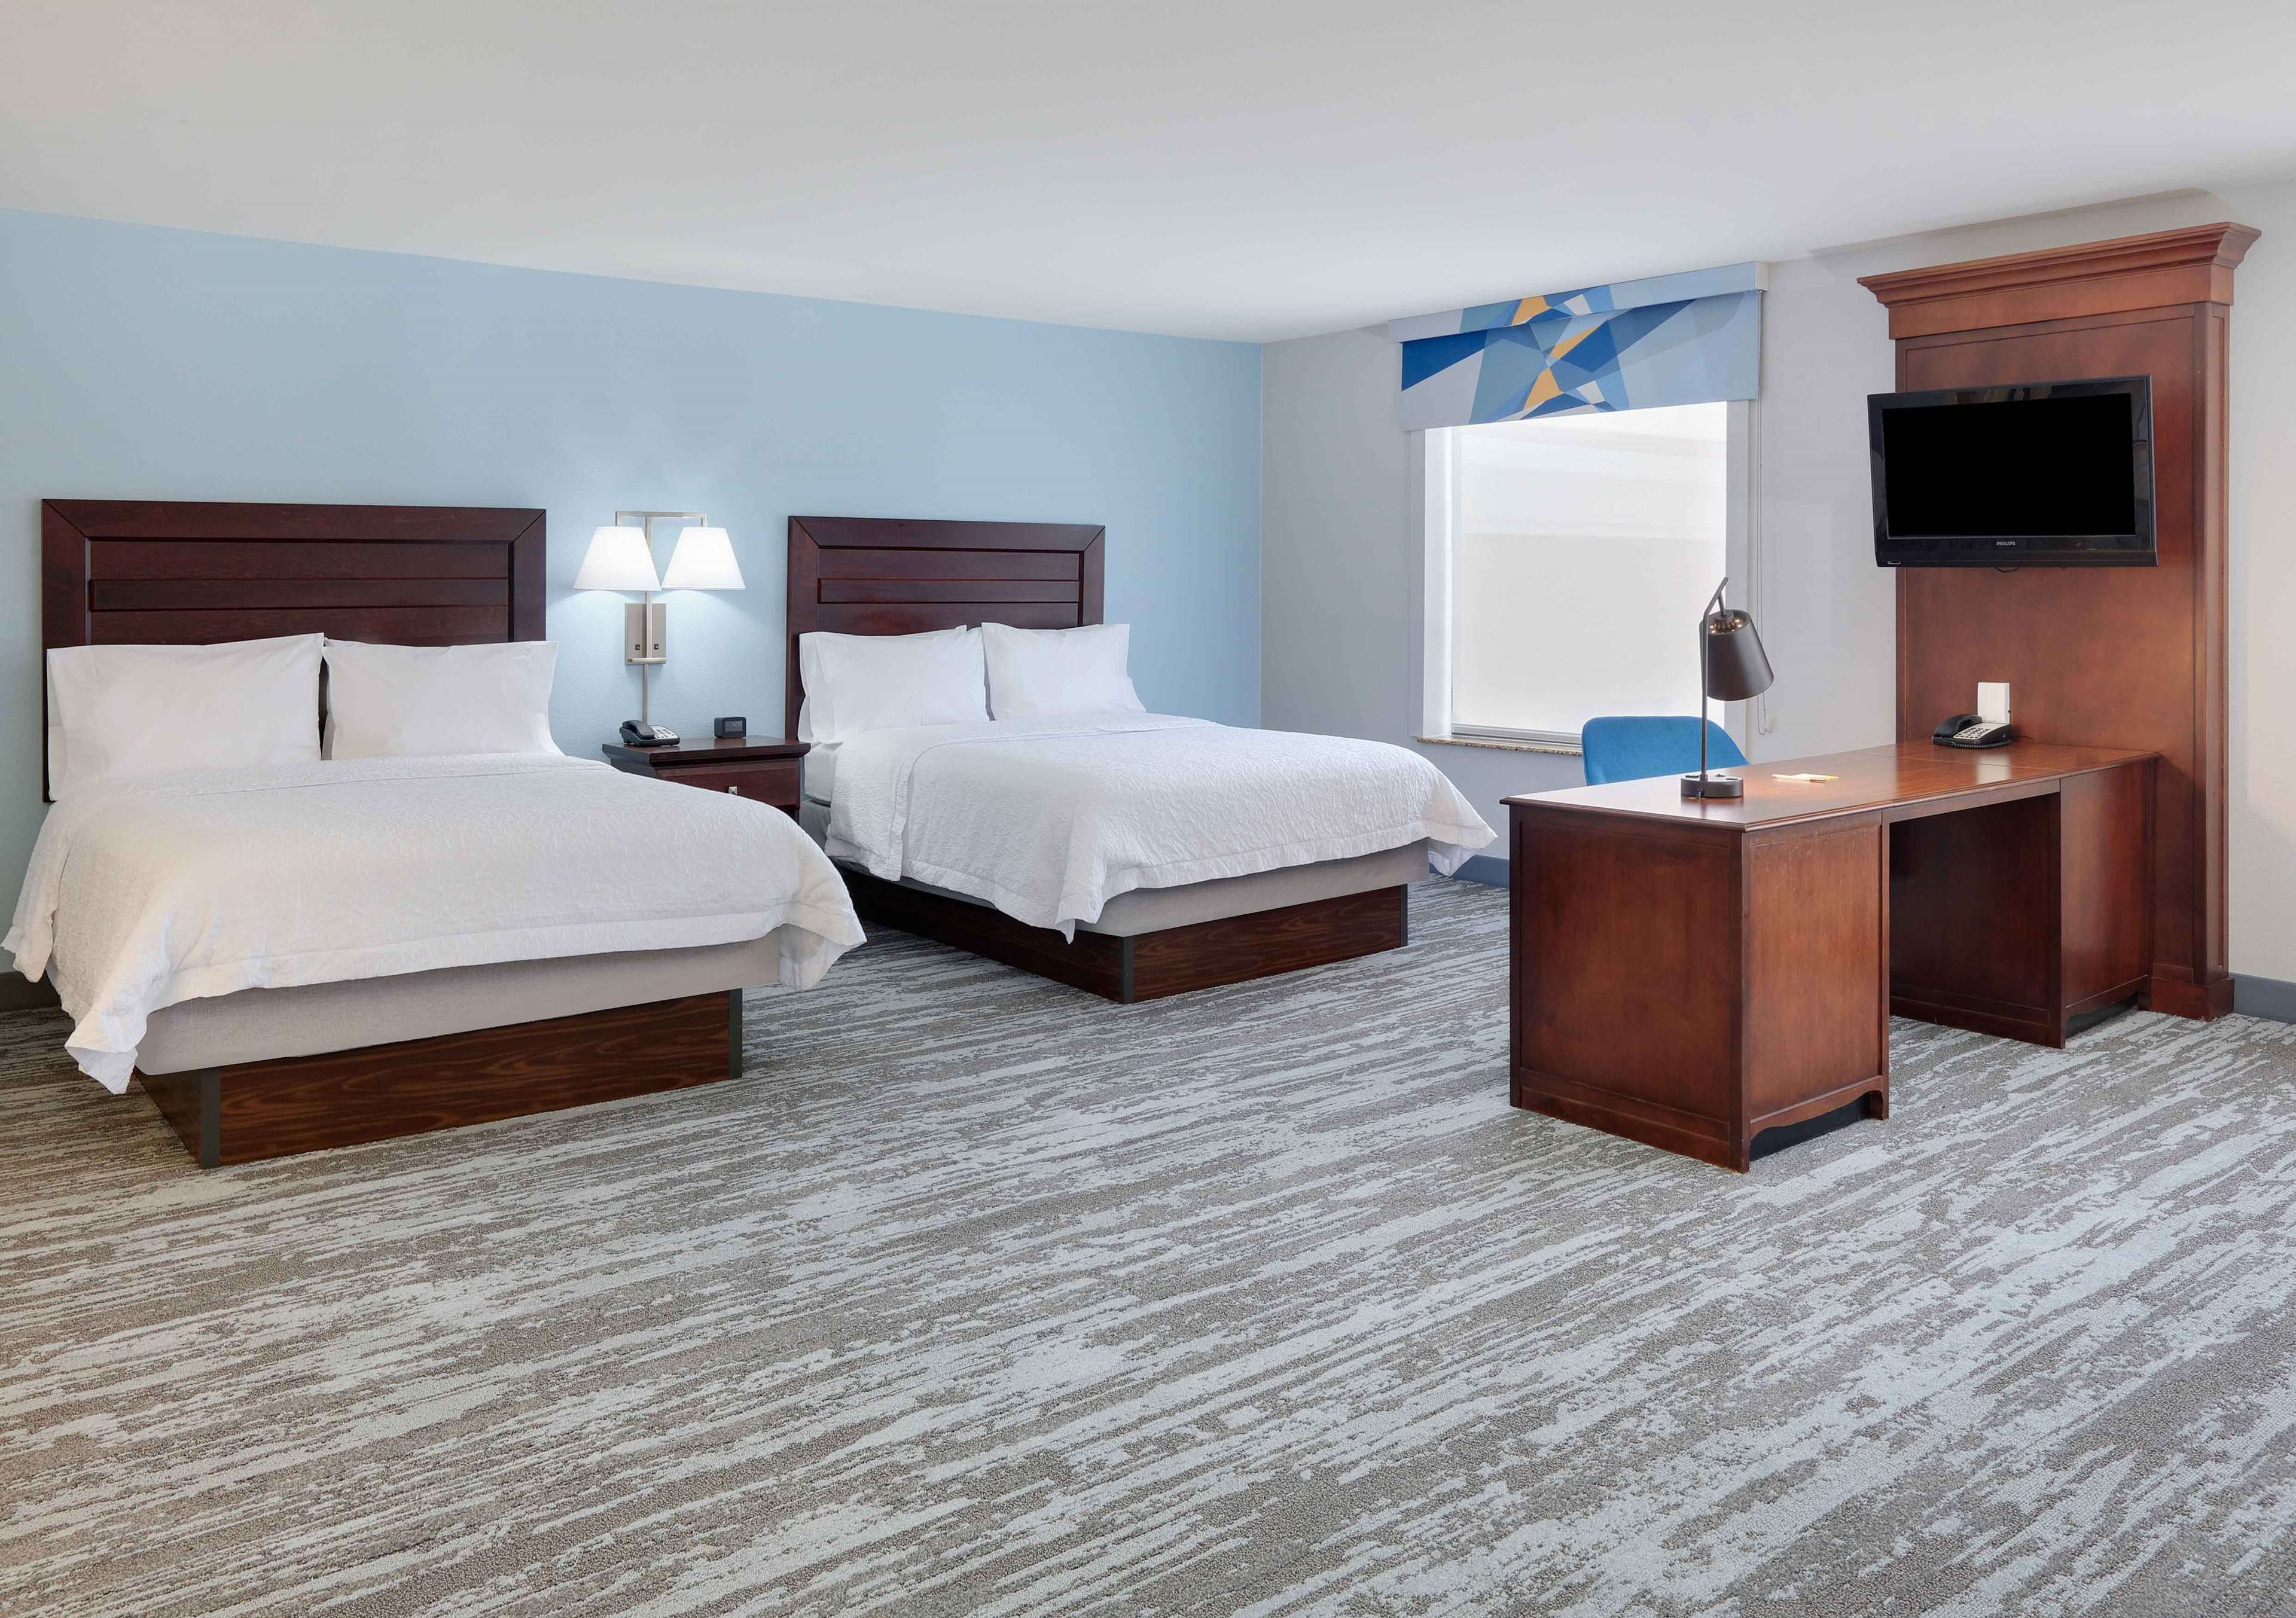 Hampton Inn & Suites Dallas-Arlington-South image 33